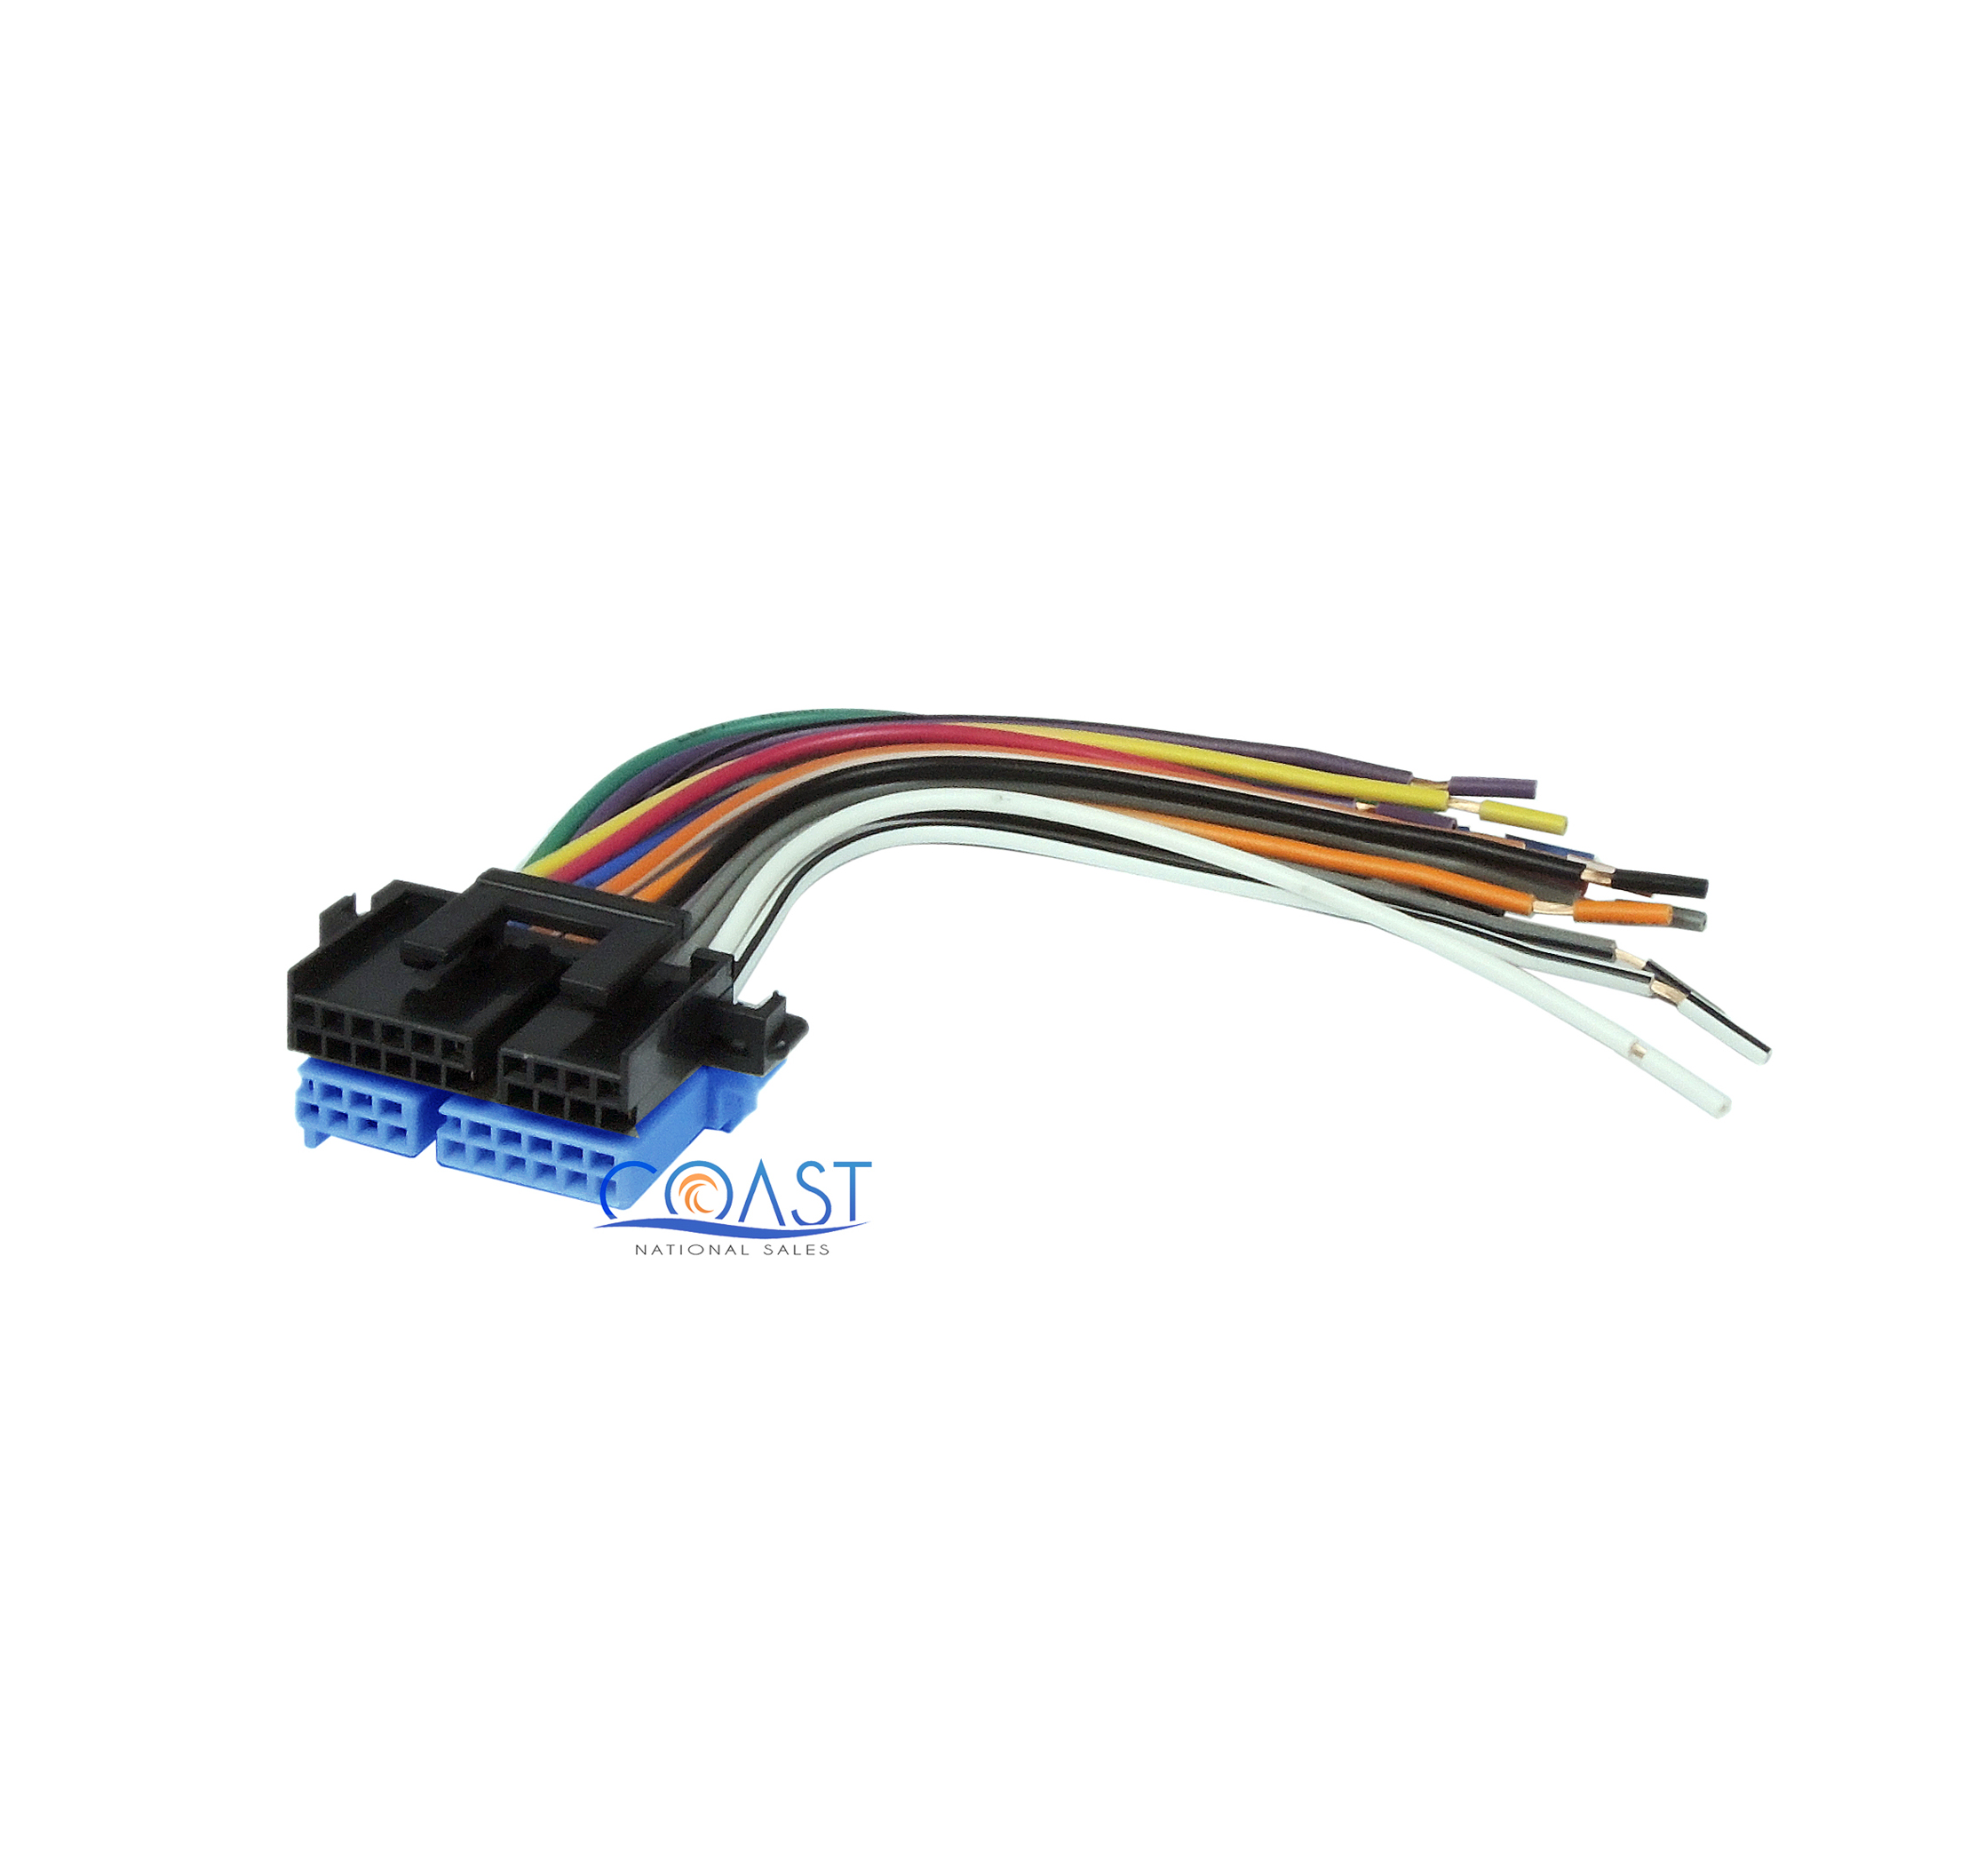 GM 1343M wiring diagram for 2004 chevy silverado 2500 the wiring diagram GMC Wiring Harness Diagram at alyssarenee.co